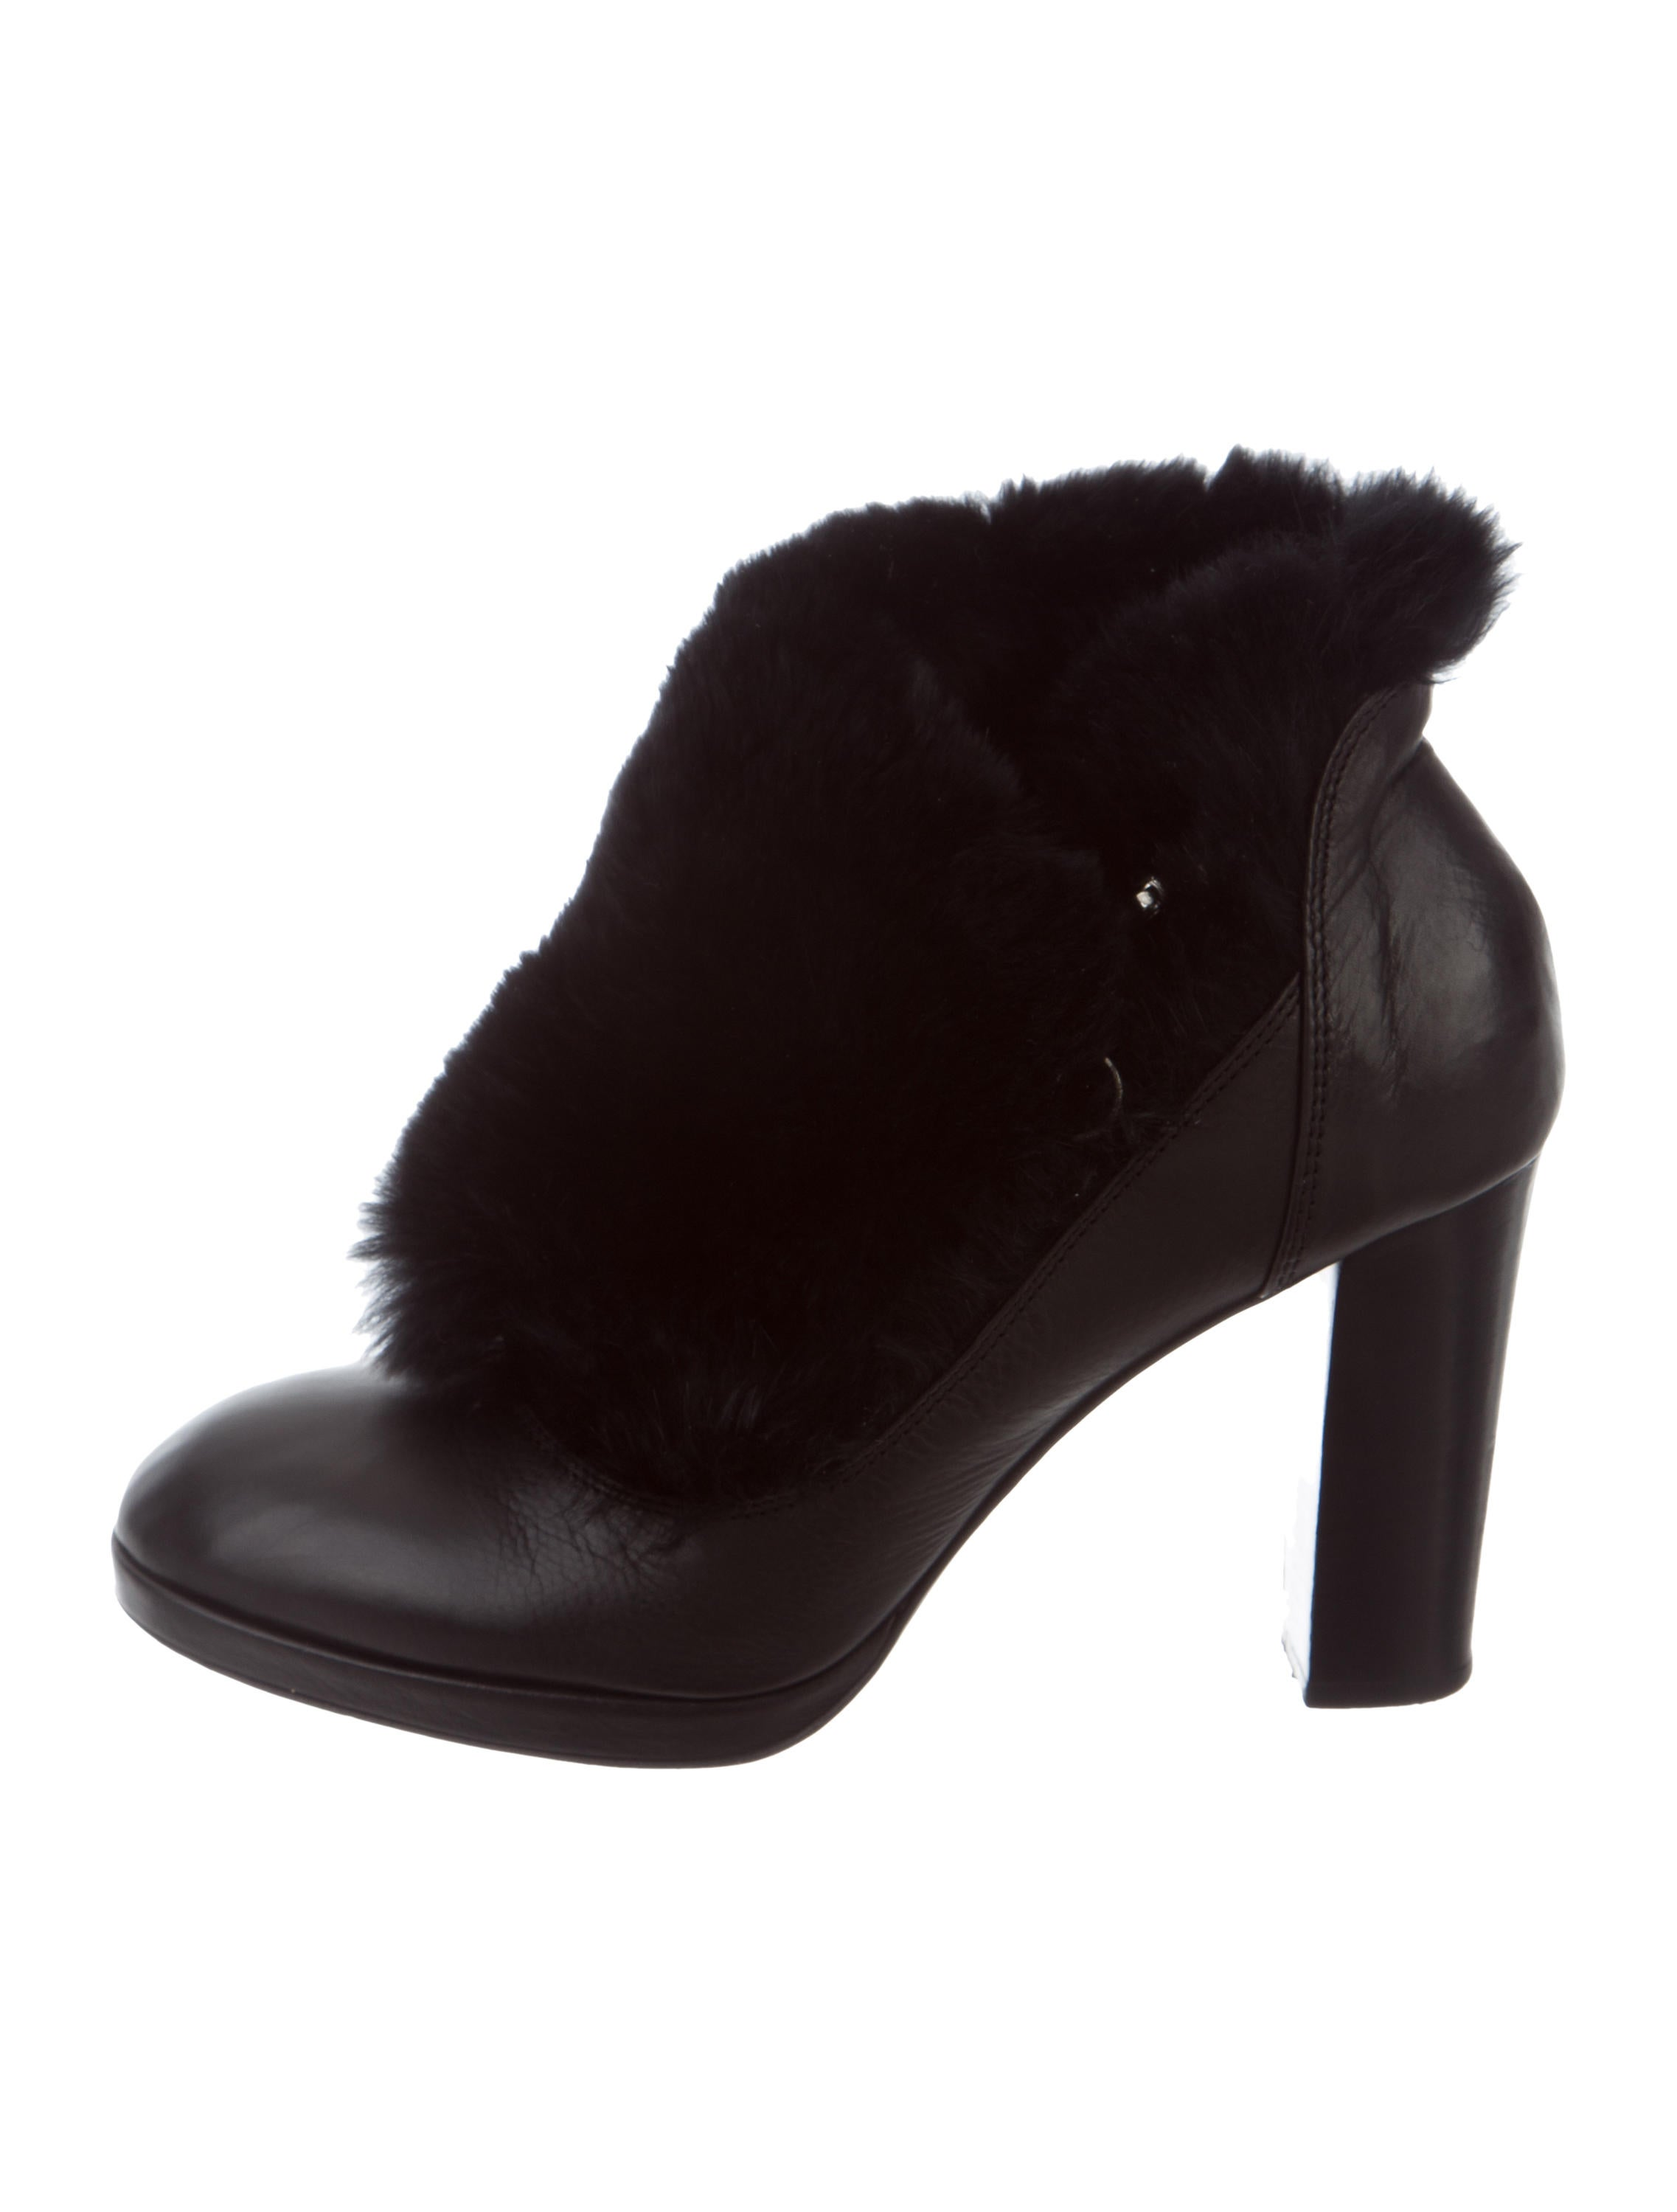 outlet fashion Style Sonia Rykiel Fur-Trimmed Leather Ankle Boots cheap sale for sale wholesale price cheap price genuine kzReVM32Ns